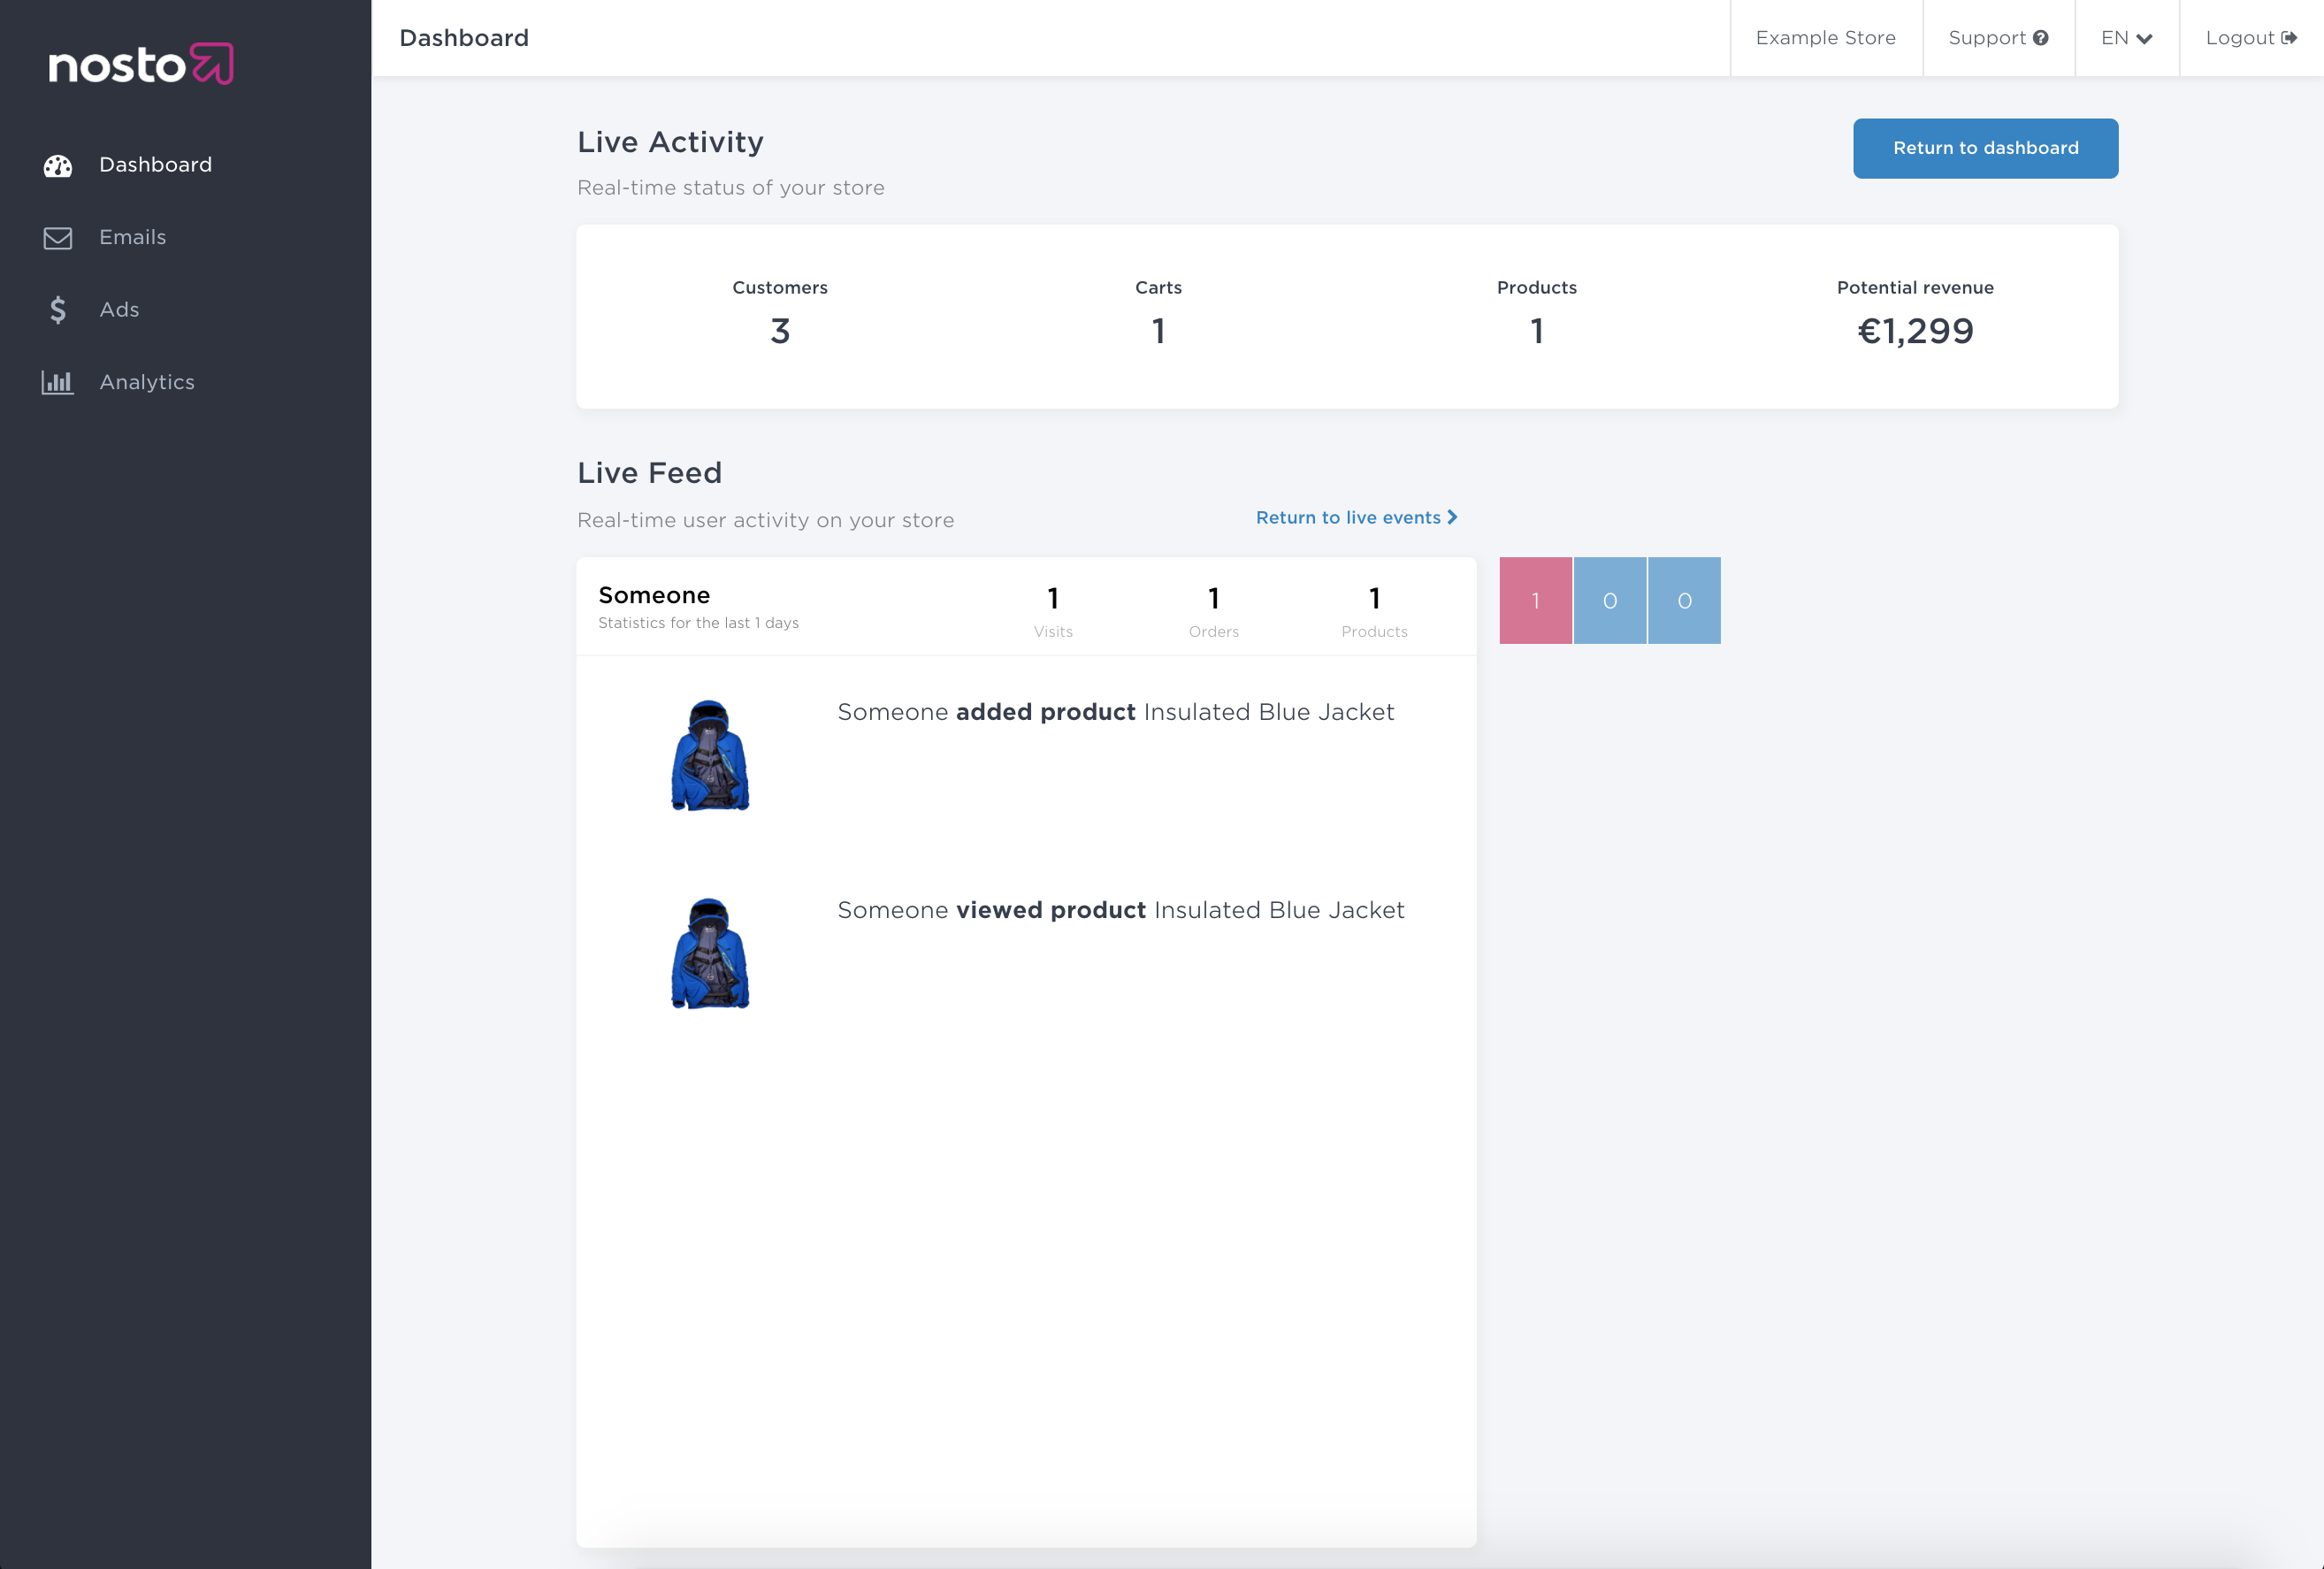 live-feed-product-cart